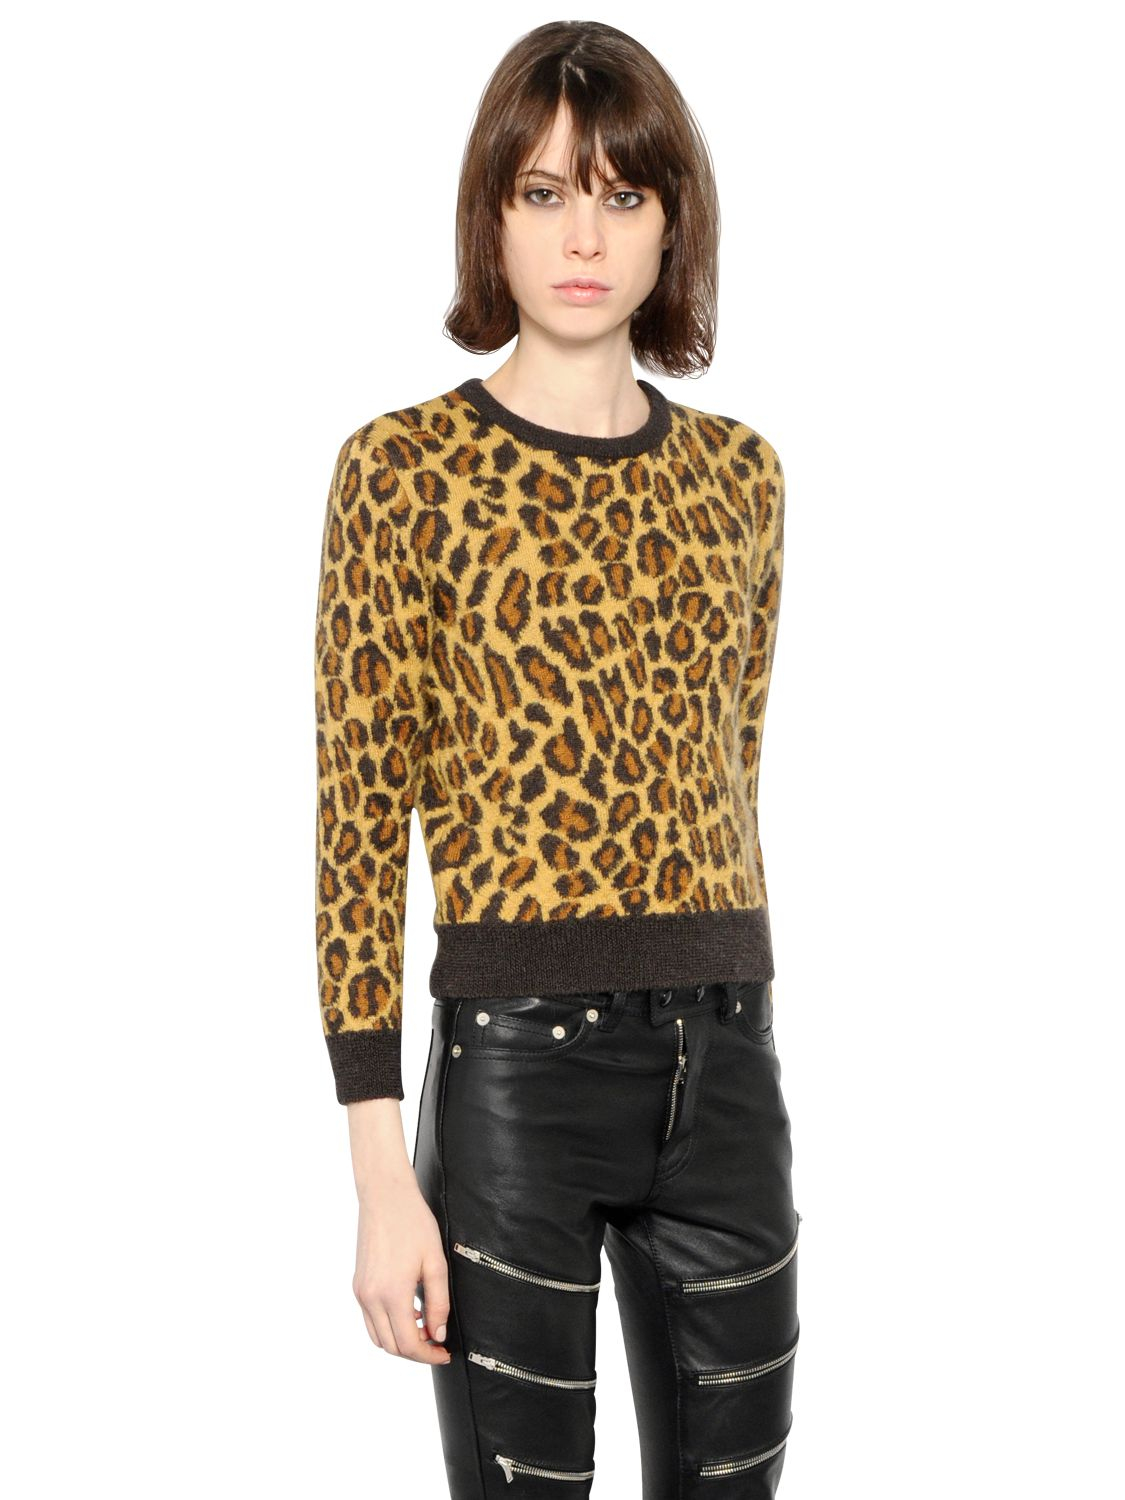 Womens Leopard-Print Mohair-Blend Sweater Saint Laurent Buy Cheap Ebay Low Price Fee Shipping Online Perfect Cheap Online Buy Cheap Browse FRWOGsd